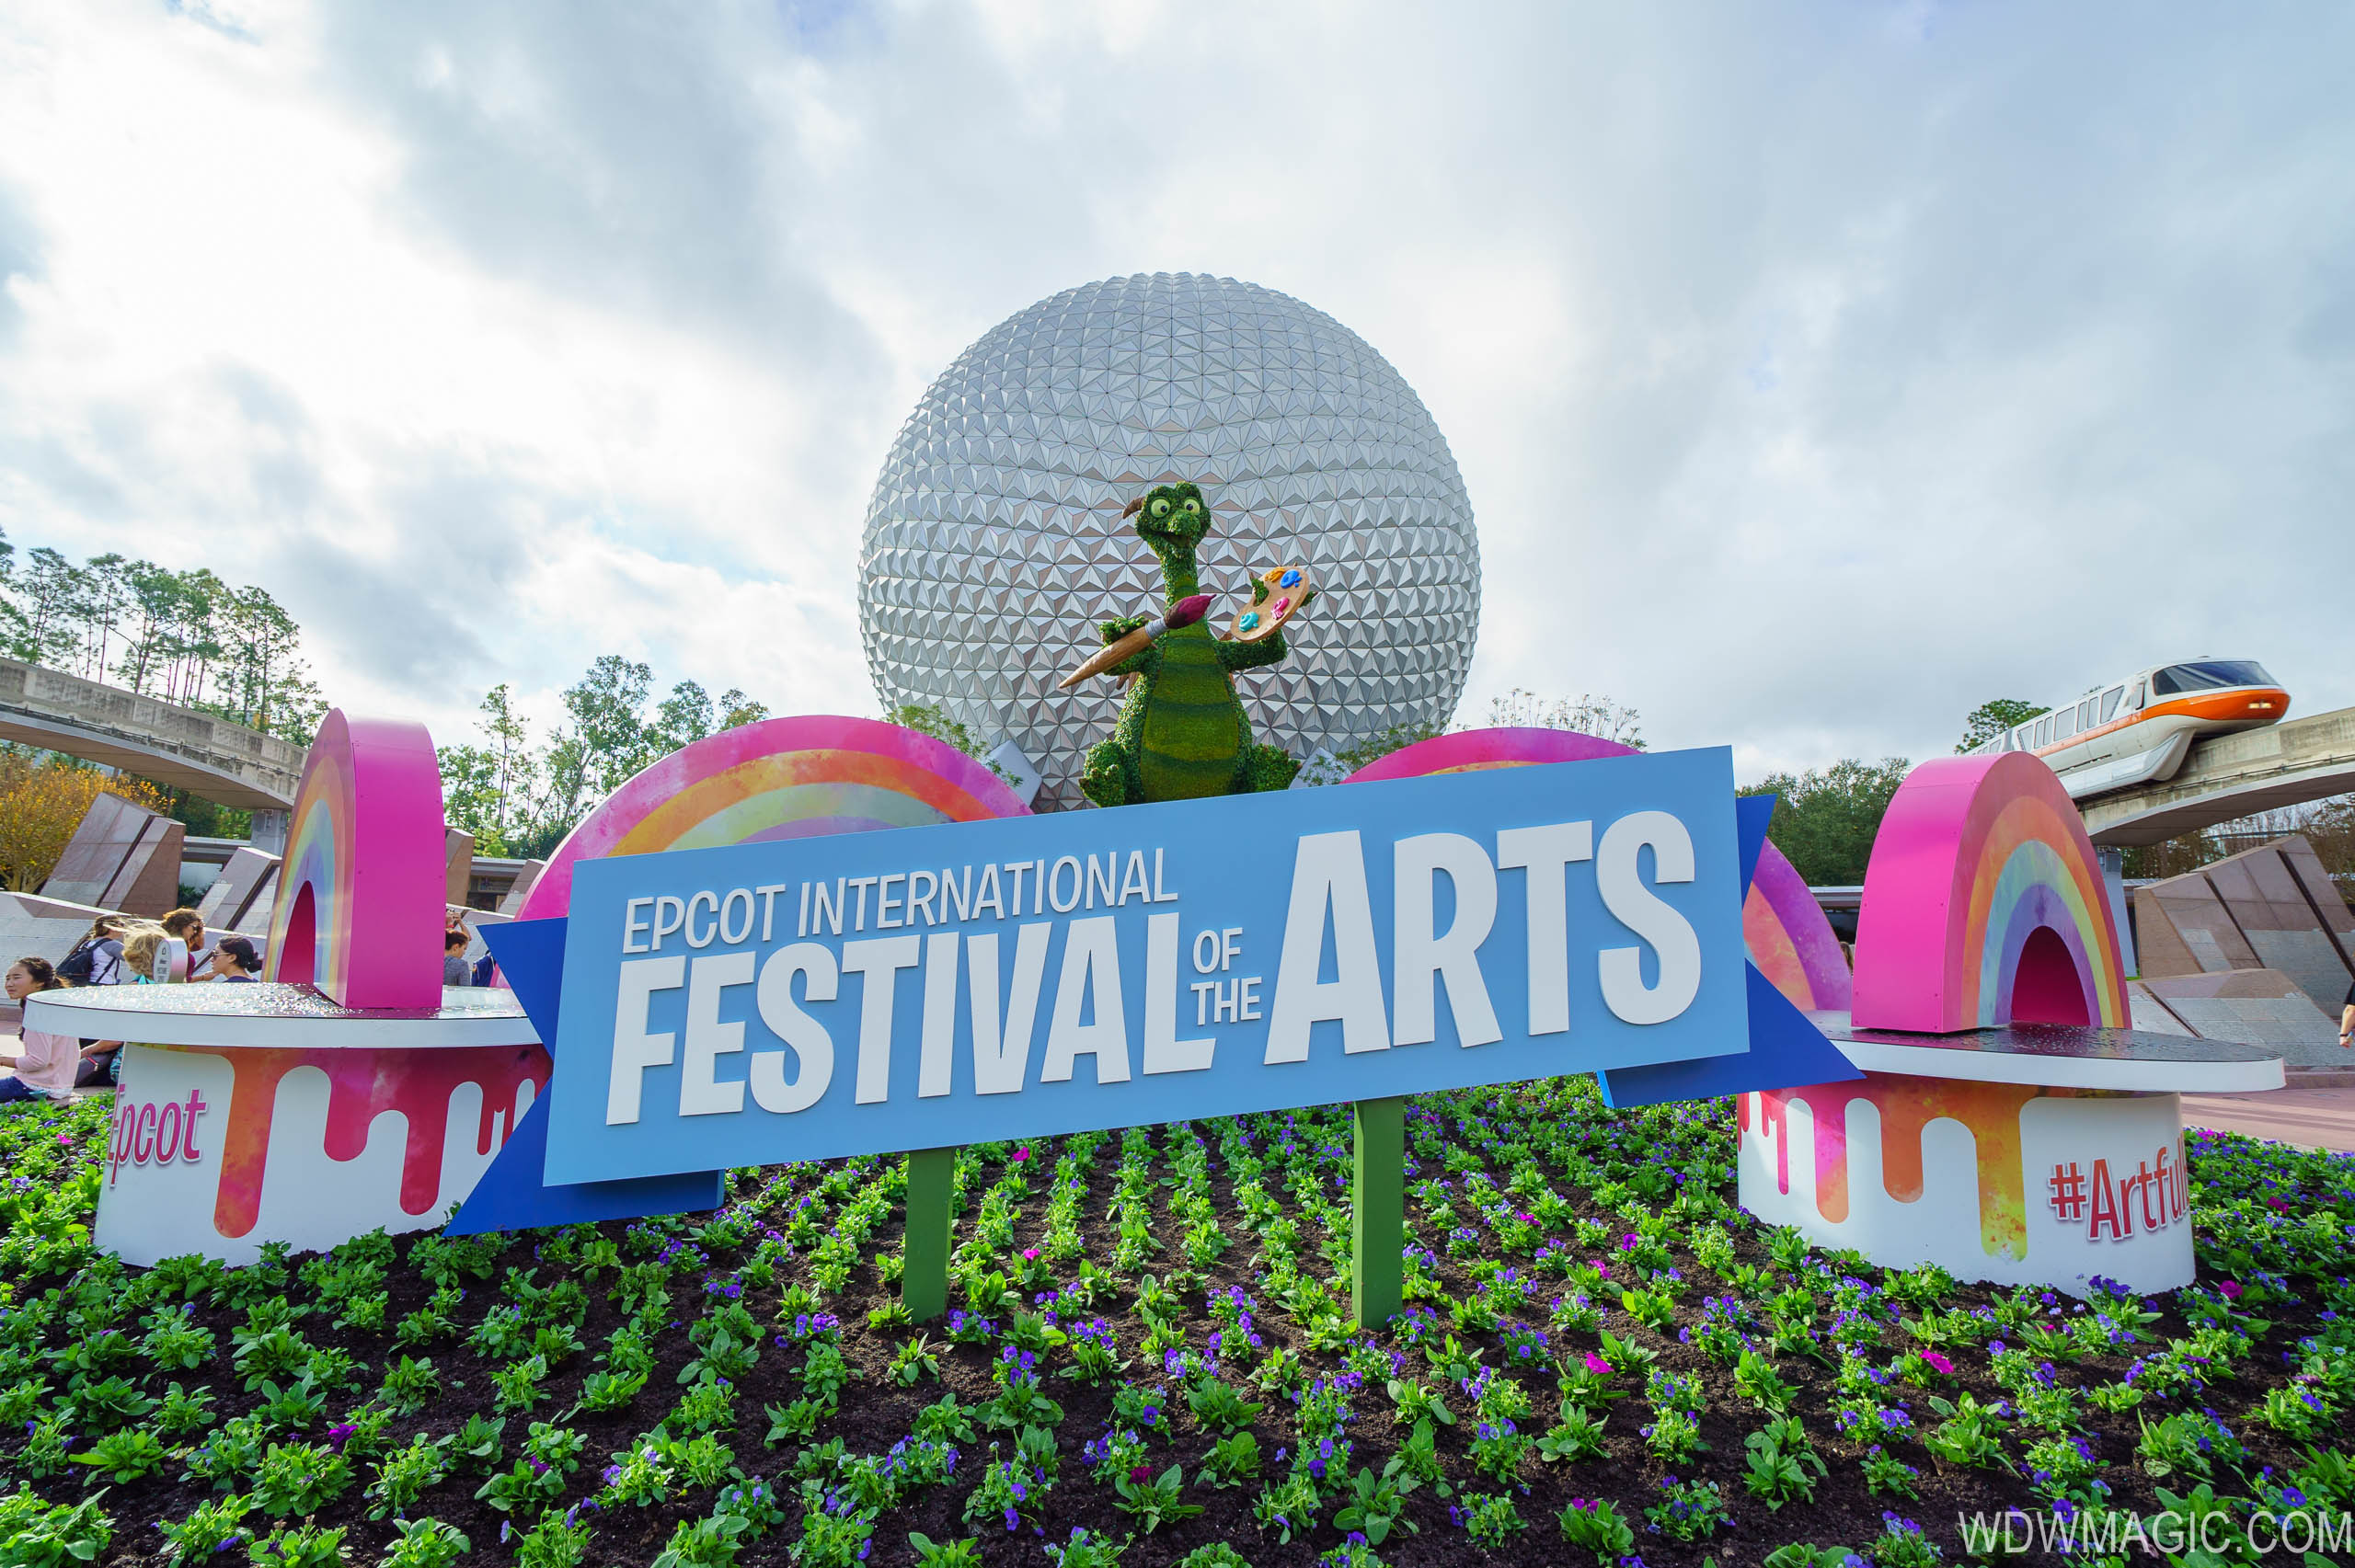 Florida Residents Can Save up to 40% with a 4-Day Ticket